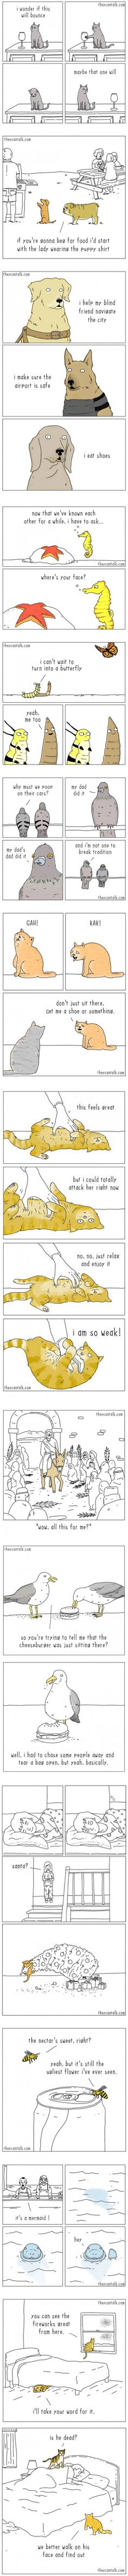 15 comics from an artist who understands animals perfectly (By Jimmy)